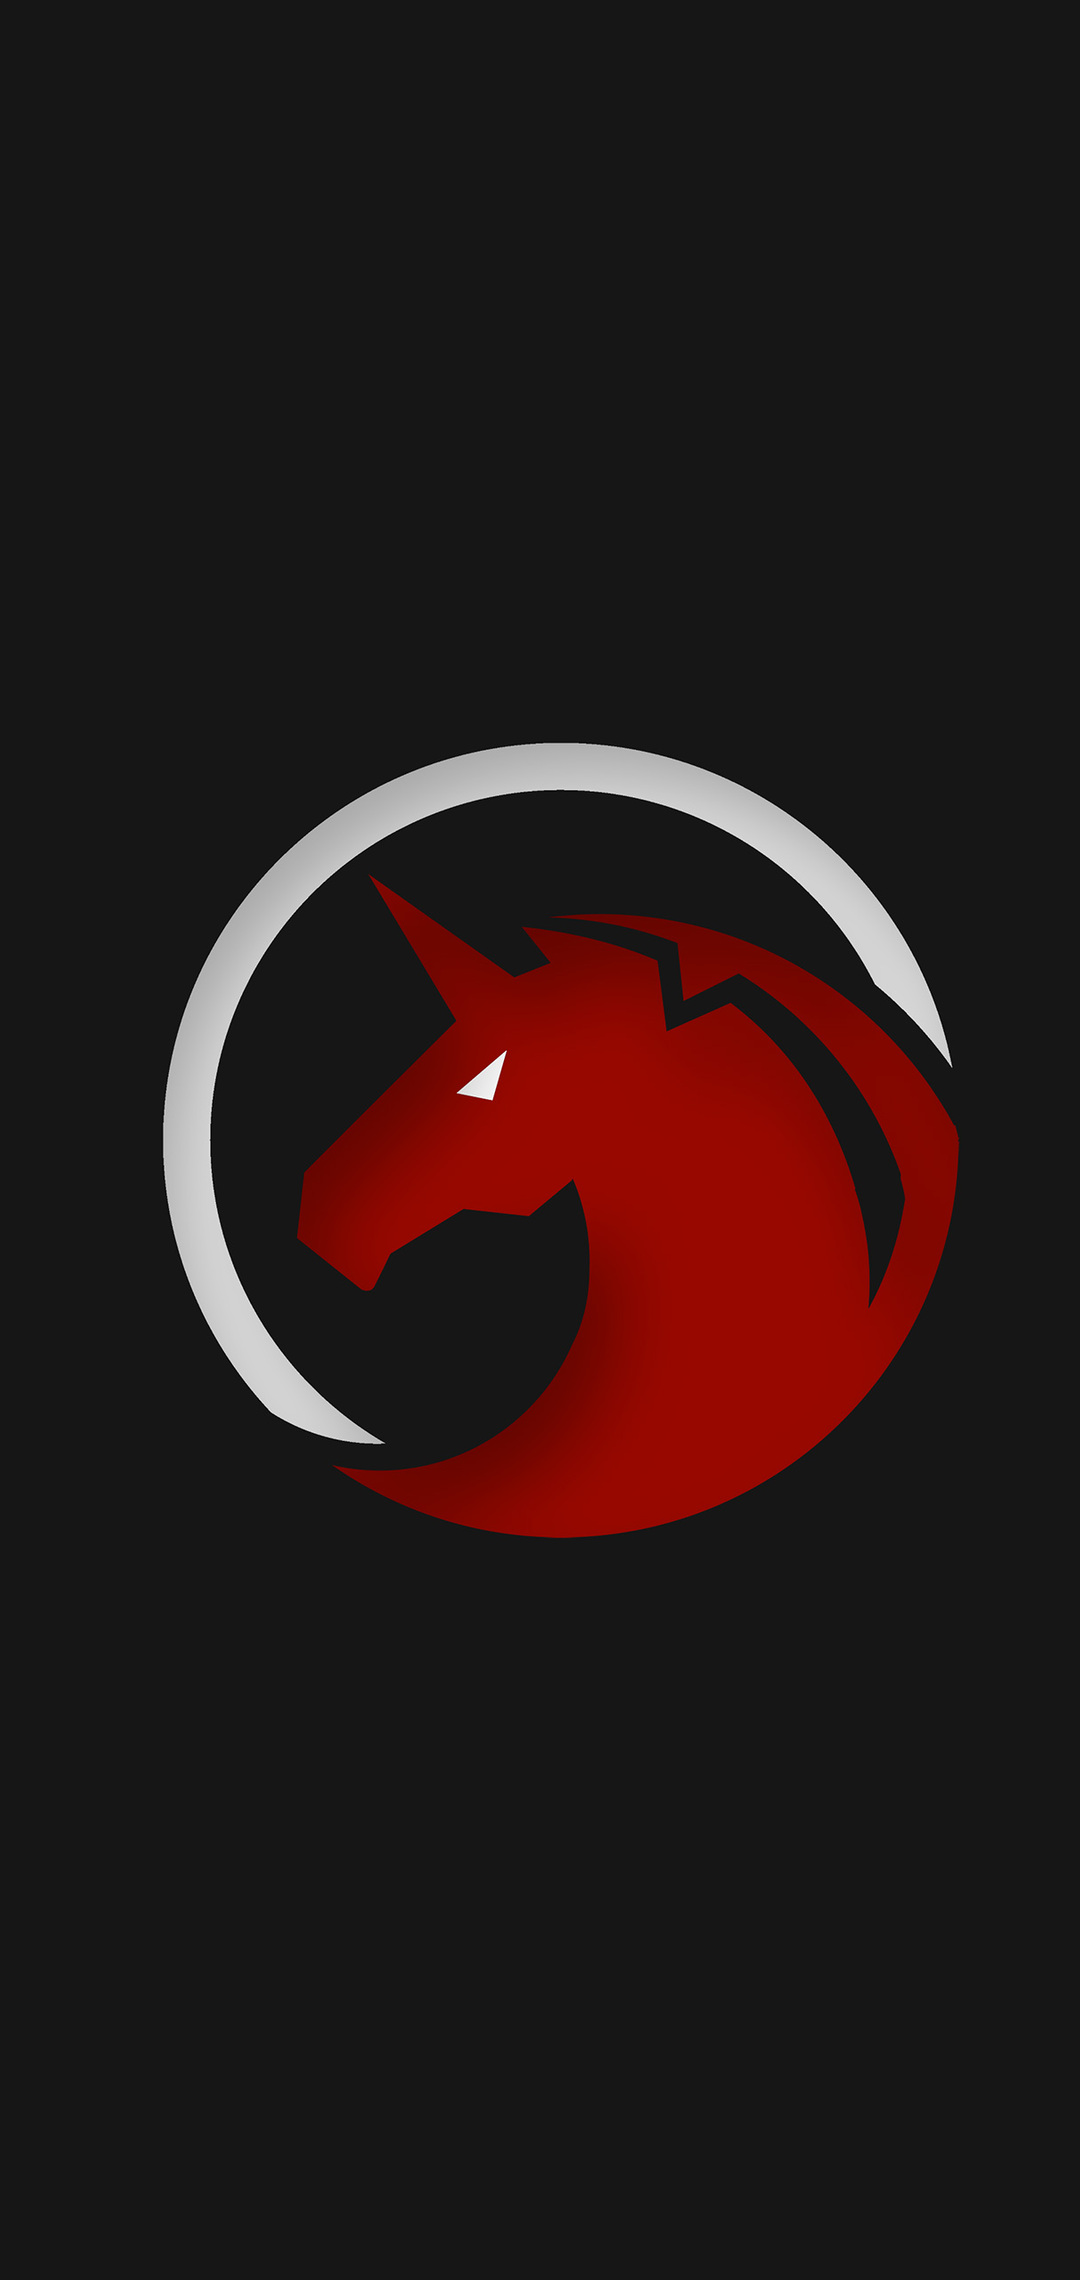 1080x2280 Red Unicorn Logo 4k E Plus 6 Huawei P20 Honor